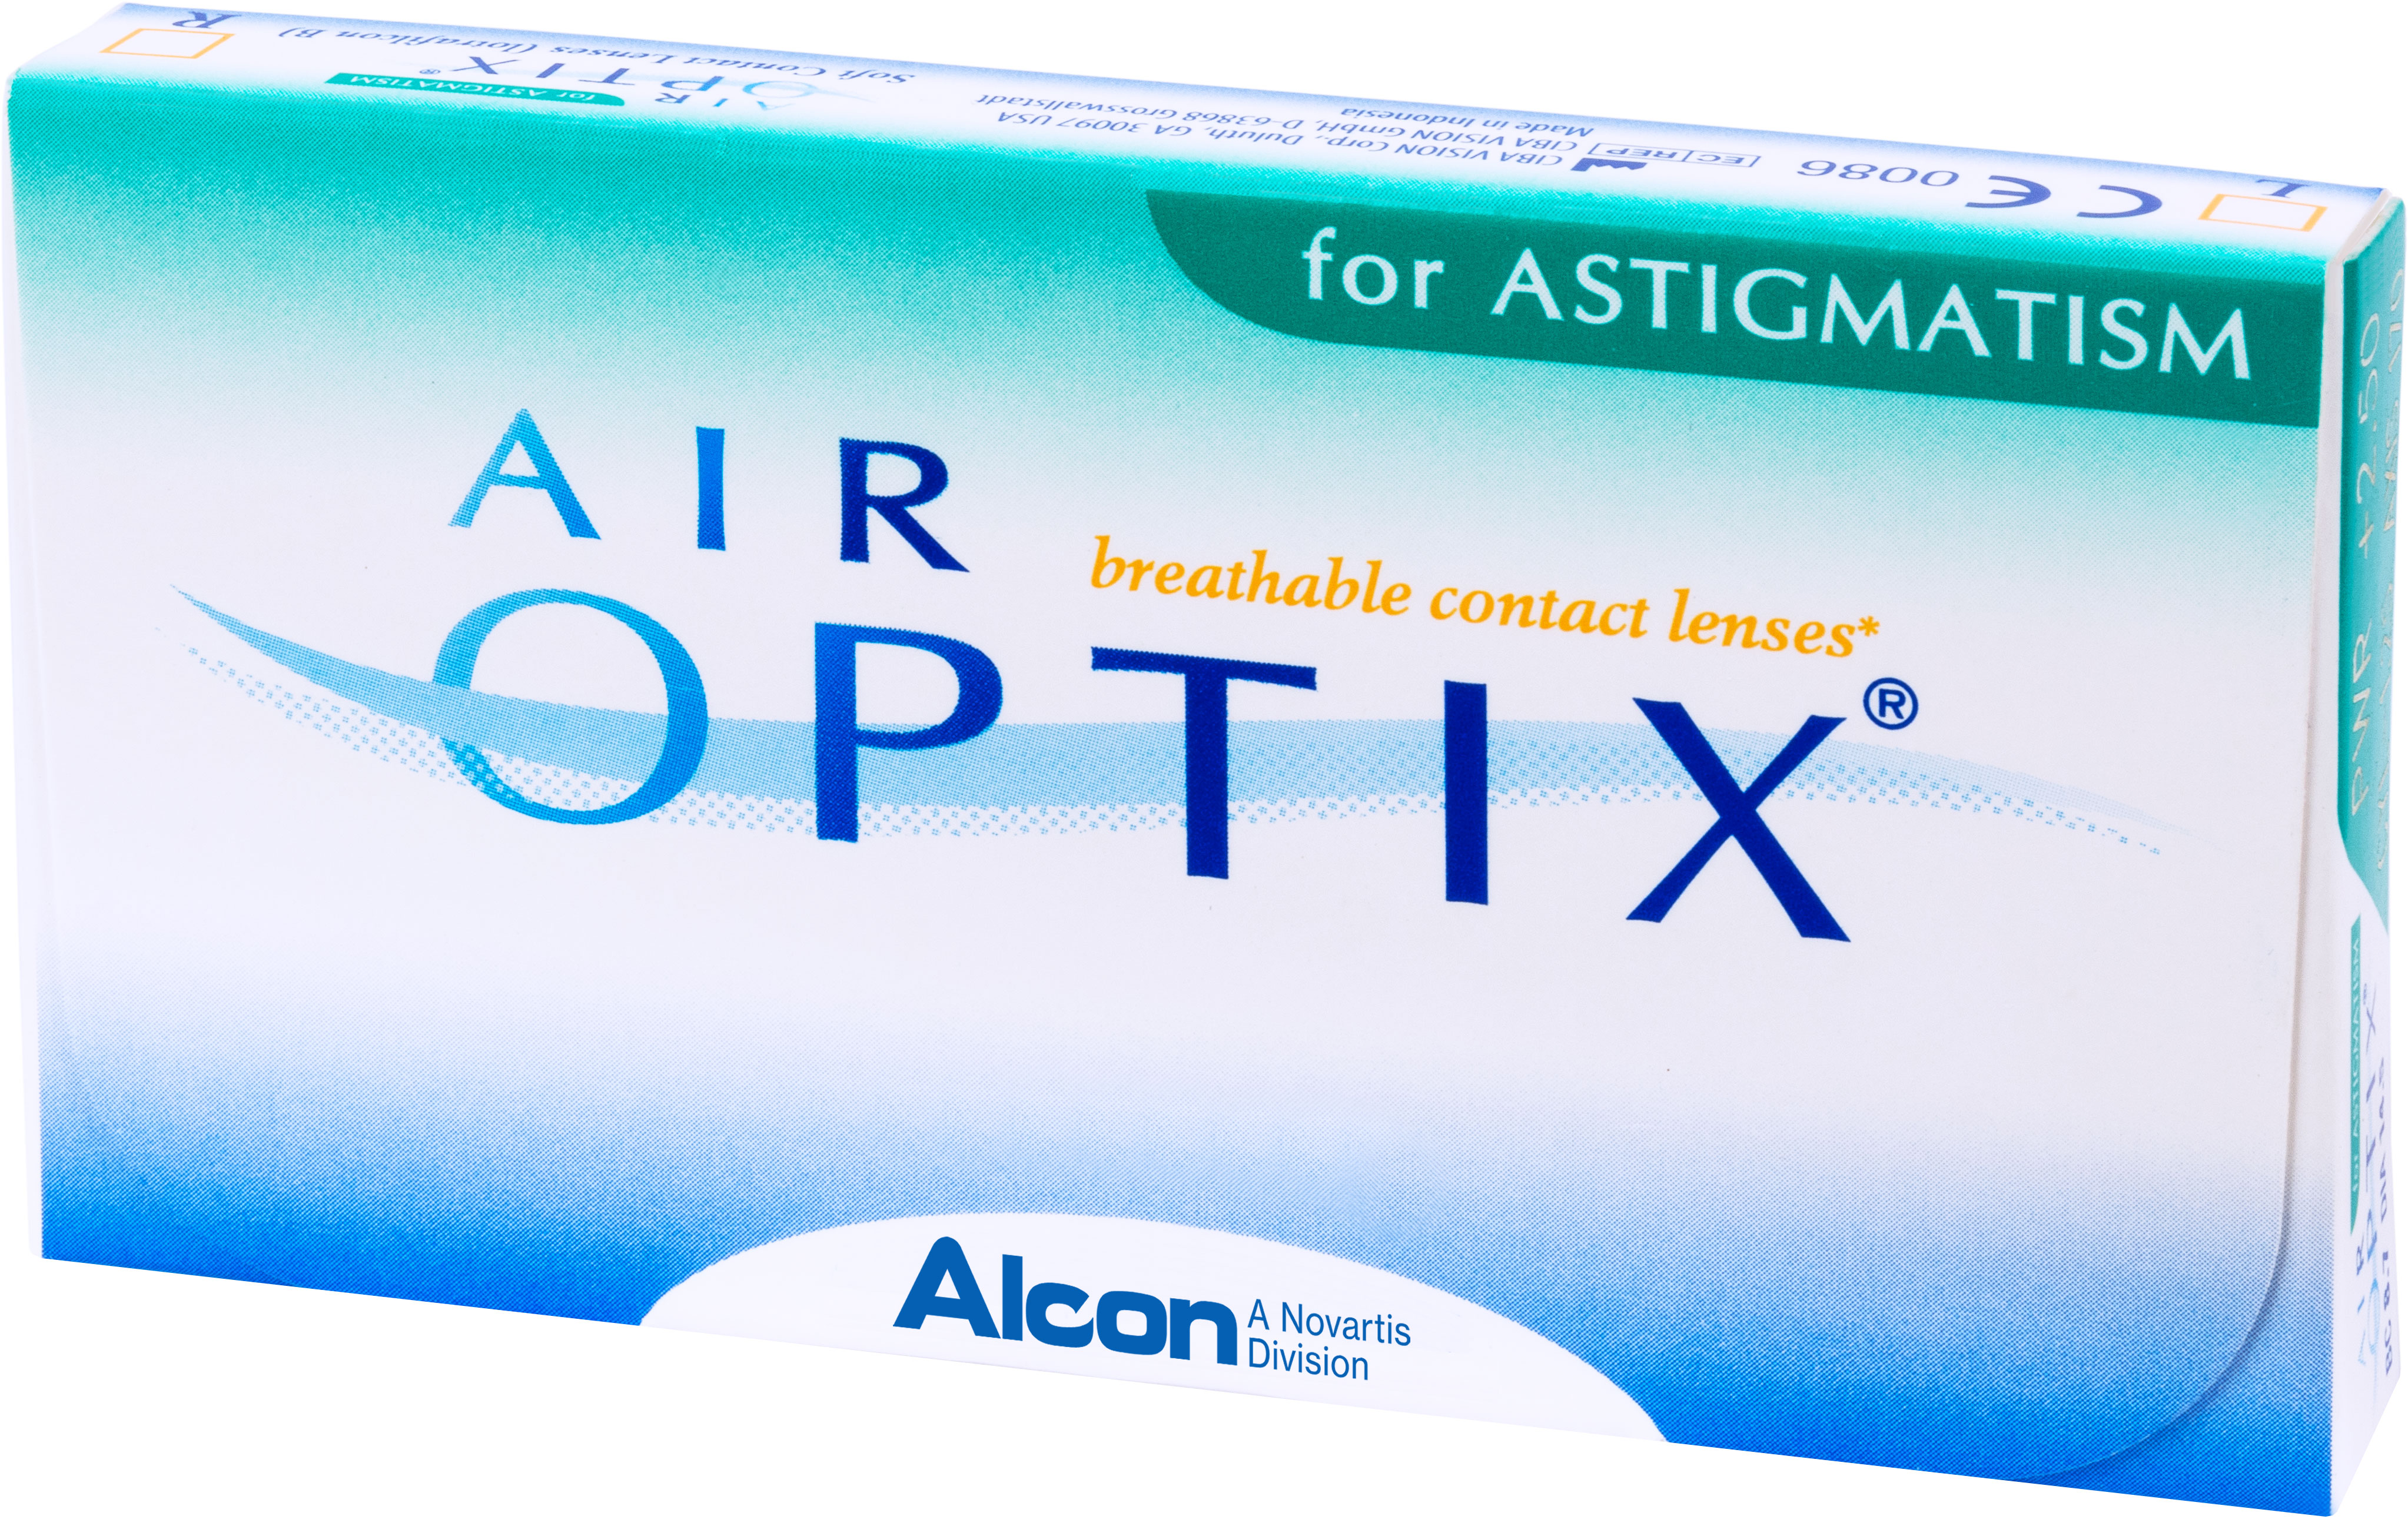 Аlcon контактные линзы Air Optix for Astigmatism 3pk /BC 8.7/DIA14.5/PWR -9.50/CYL -1.75/AXIS 160100038269with Hydraclear